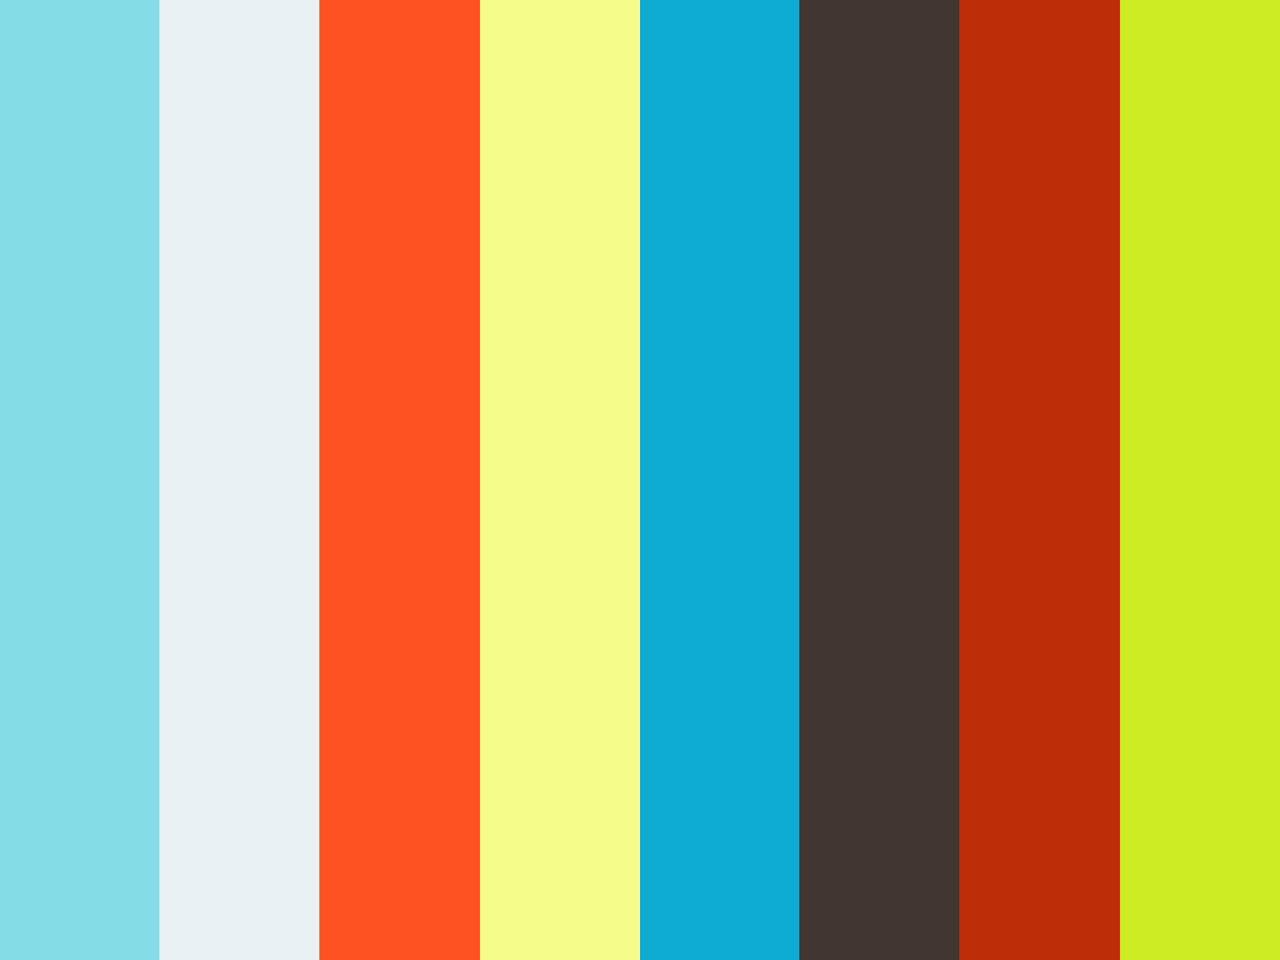 Cockroach Controlled Mobile Robot #2